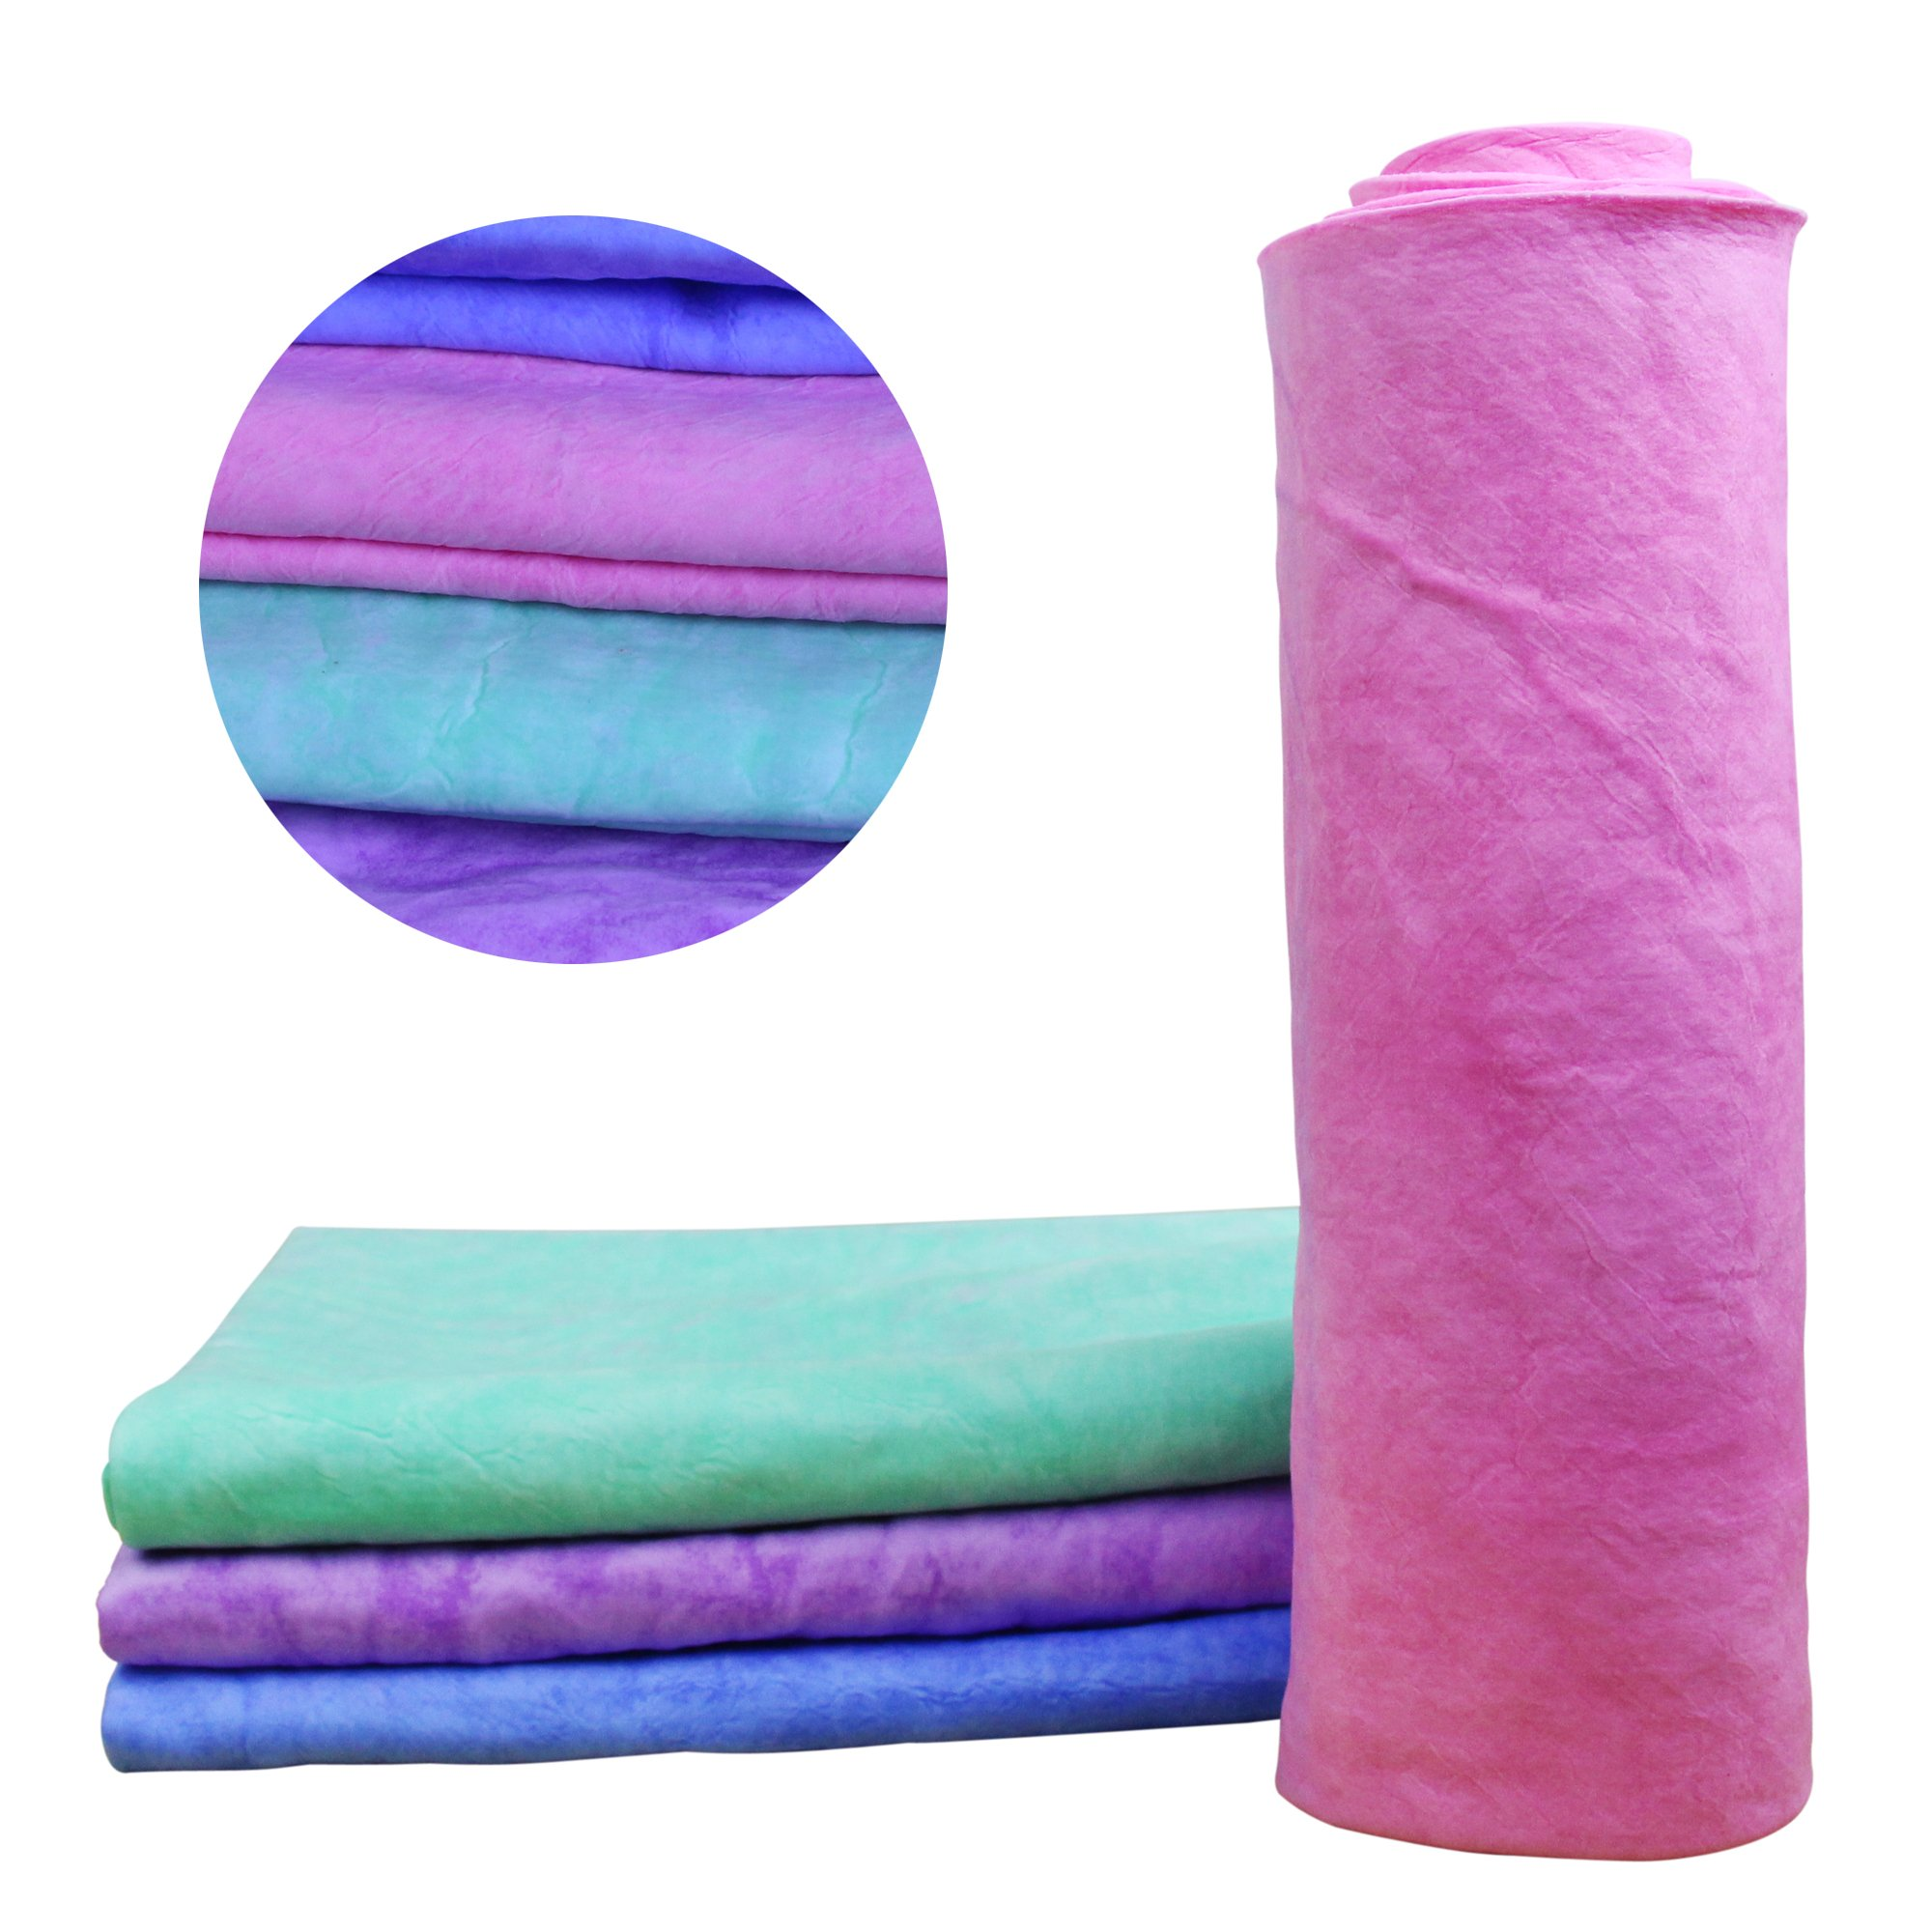 K.T.Fancy 4 Color 27'' x 17'' Fast Drying PVA Chamois Towel Super Absorbent(4 X Mixed Color)